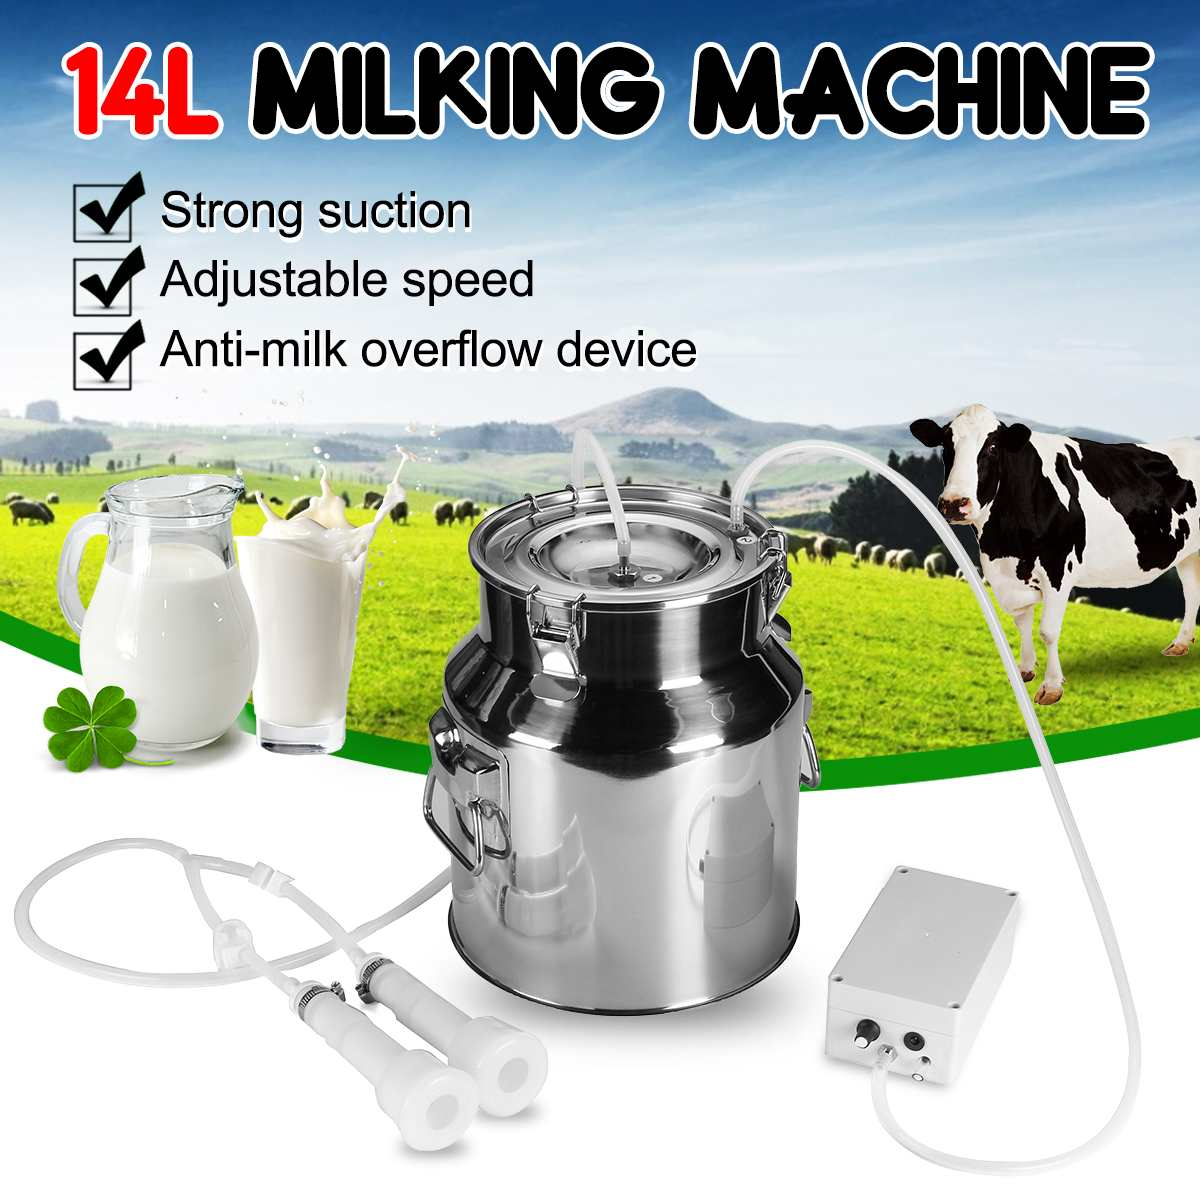 14L Electric Milking Machine Stainless Steel Bucket For Farm Pasture Cows Goats Stainless Steel Bucket Cow Goat Sheep Milker coffee table